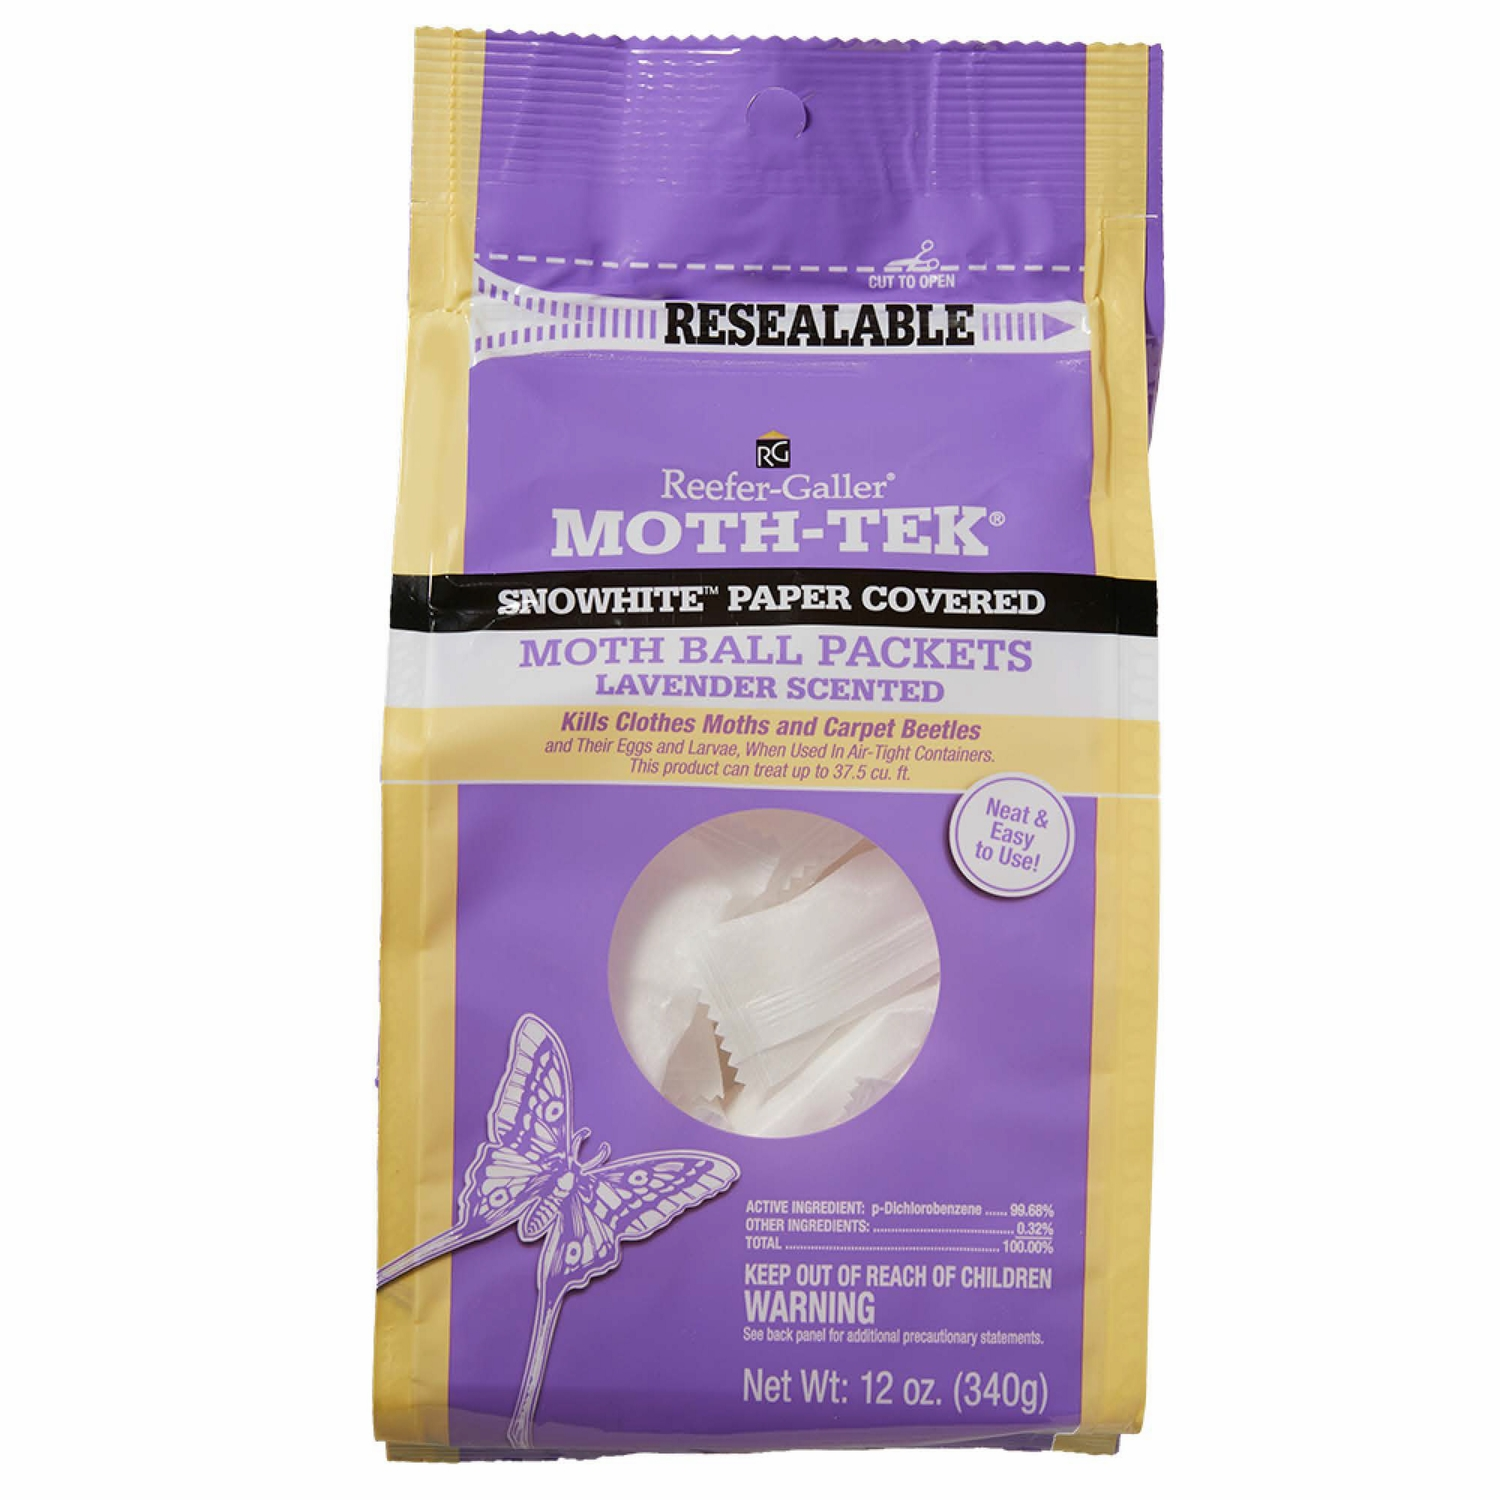 Reefer-Galler MOTH-TEK Moth Balls 12 oz. 12 Oz. lavender scented moth prevention, snow white paper covered, ideal for trunks, drawers, chests and clothing storage containers, protects clothing, blankets, leaves no lingering odor.